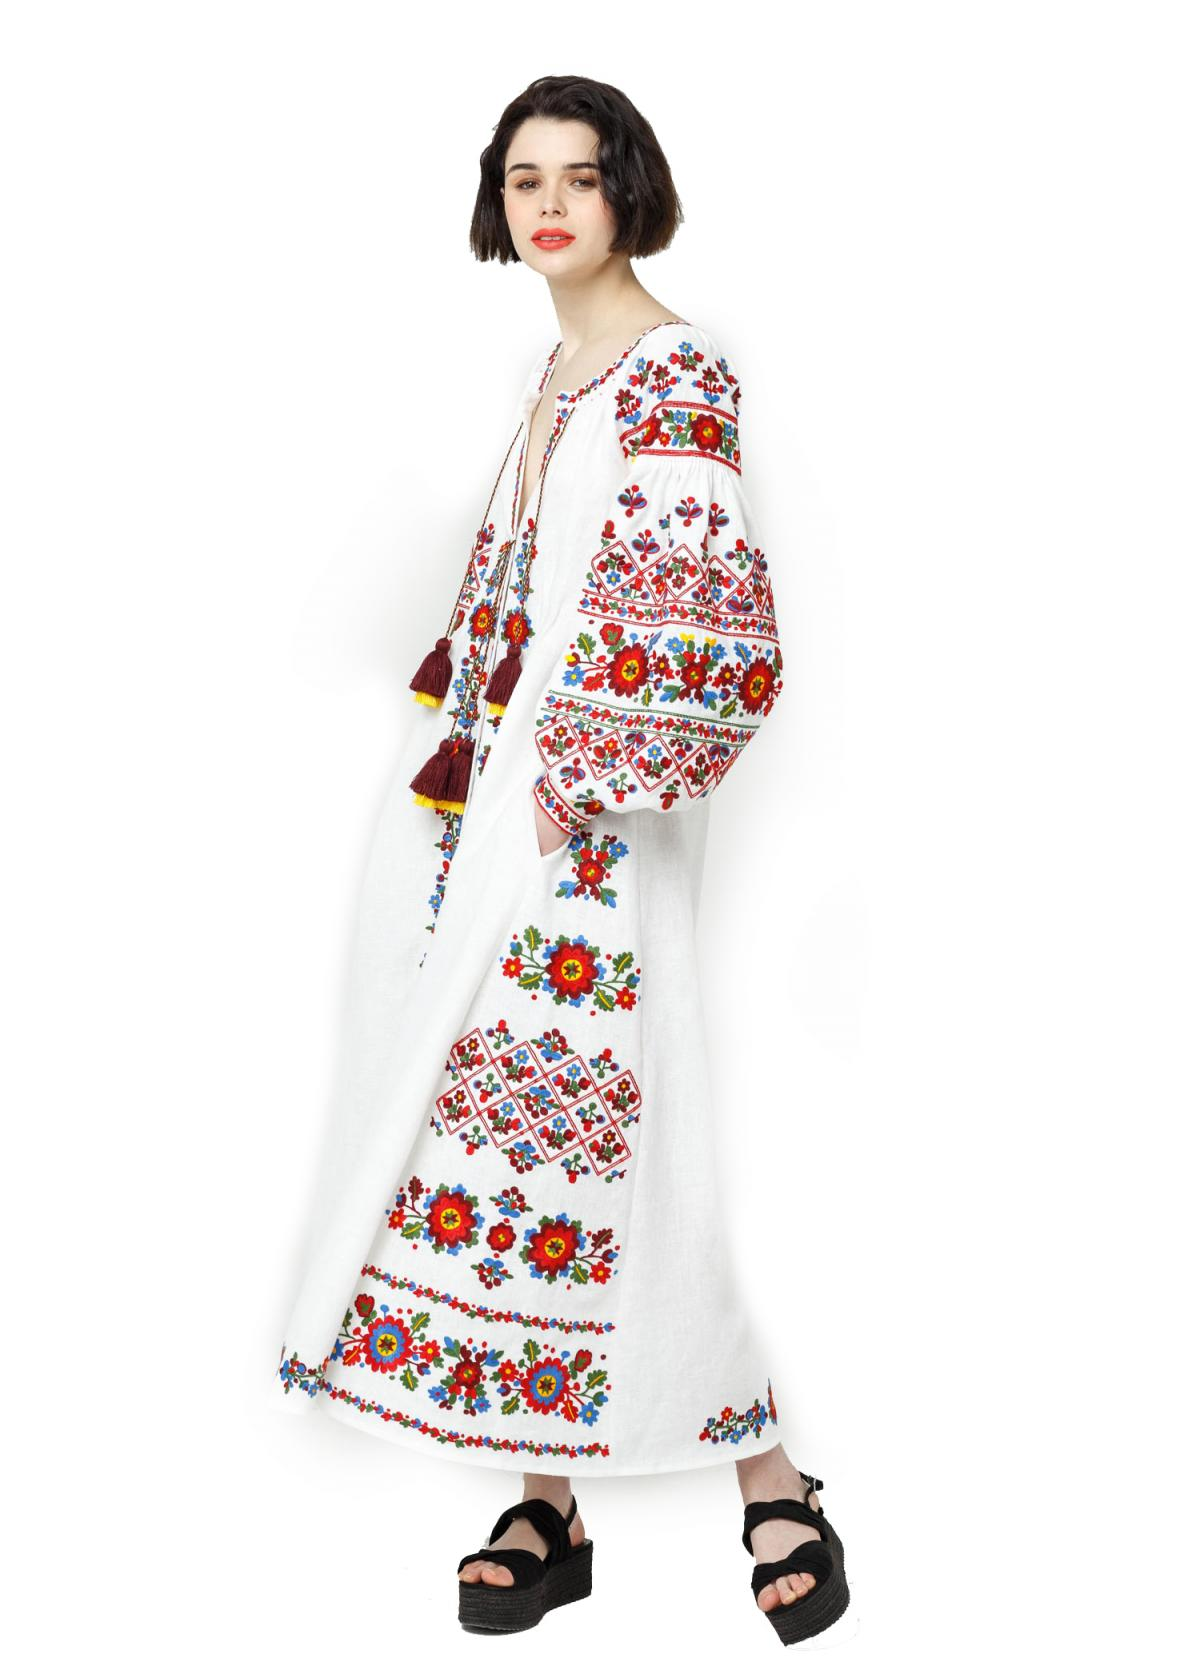 Long white embroidered dress with embroidery flowers,  Limited Edition. Photo №2. | Narodnyi dim Ukraine